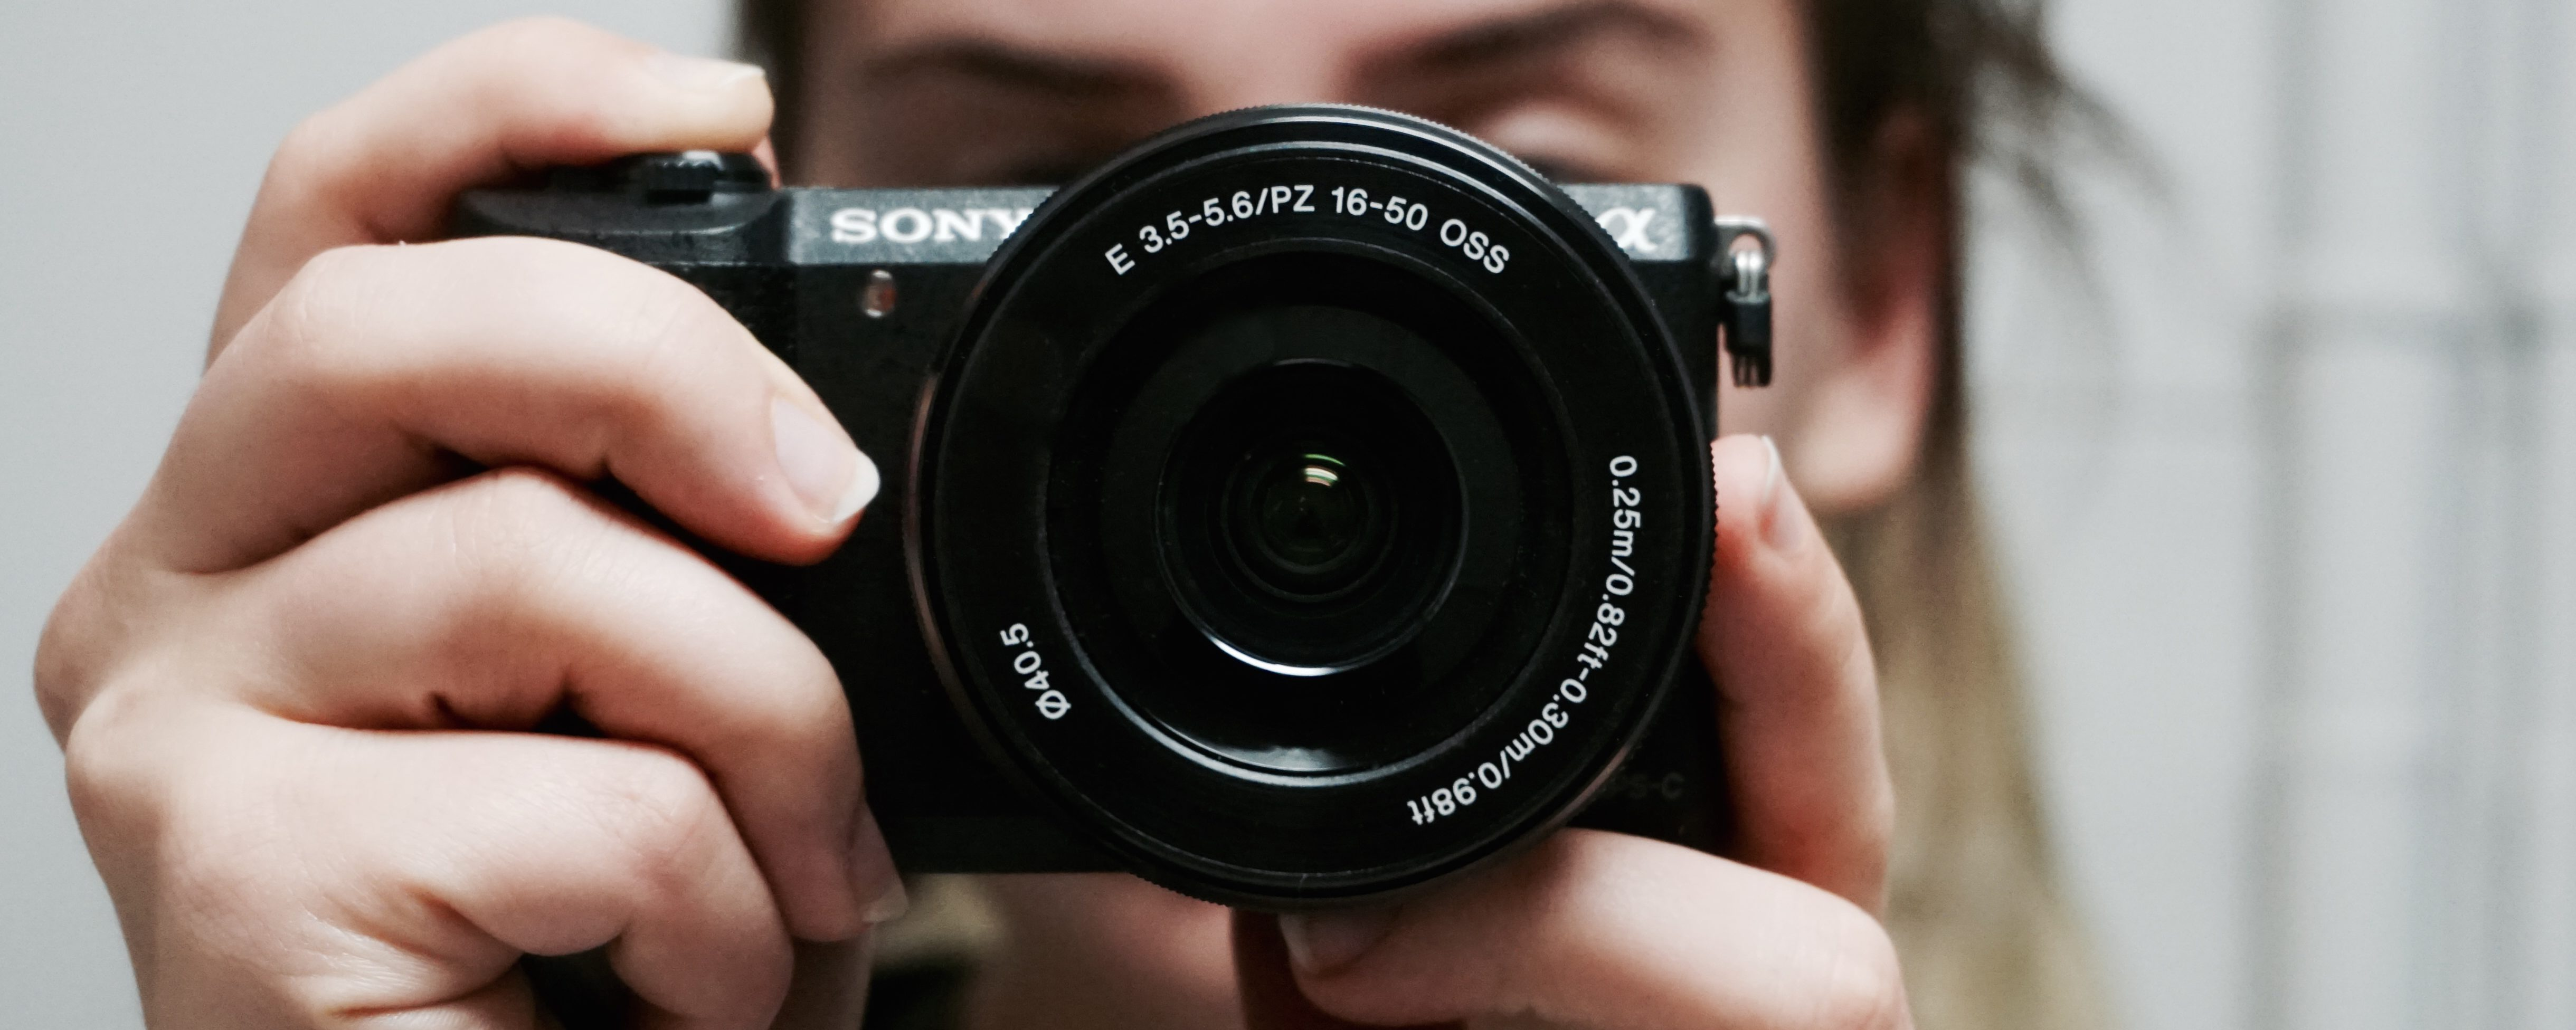 photograph selfie sony camera 4880x1952